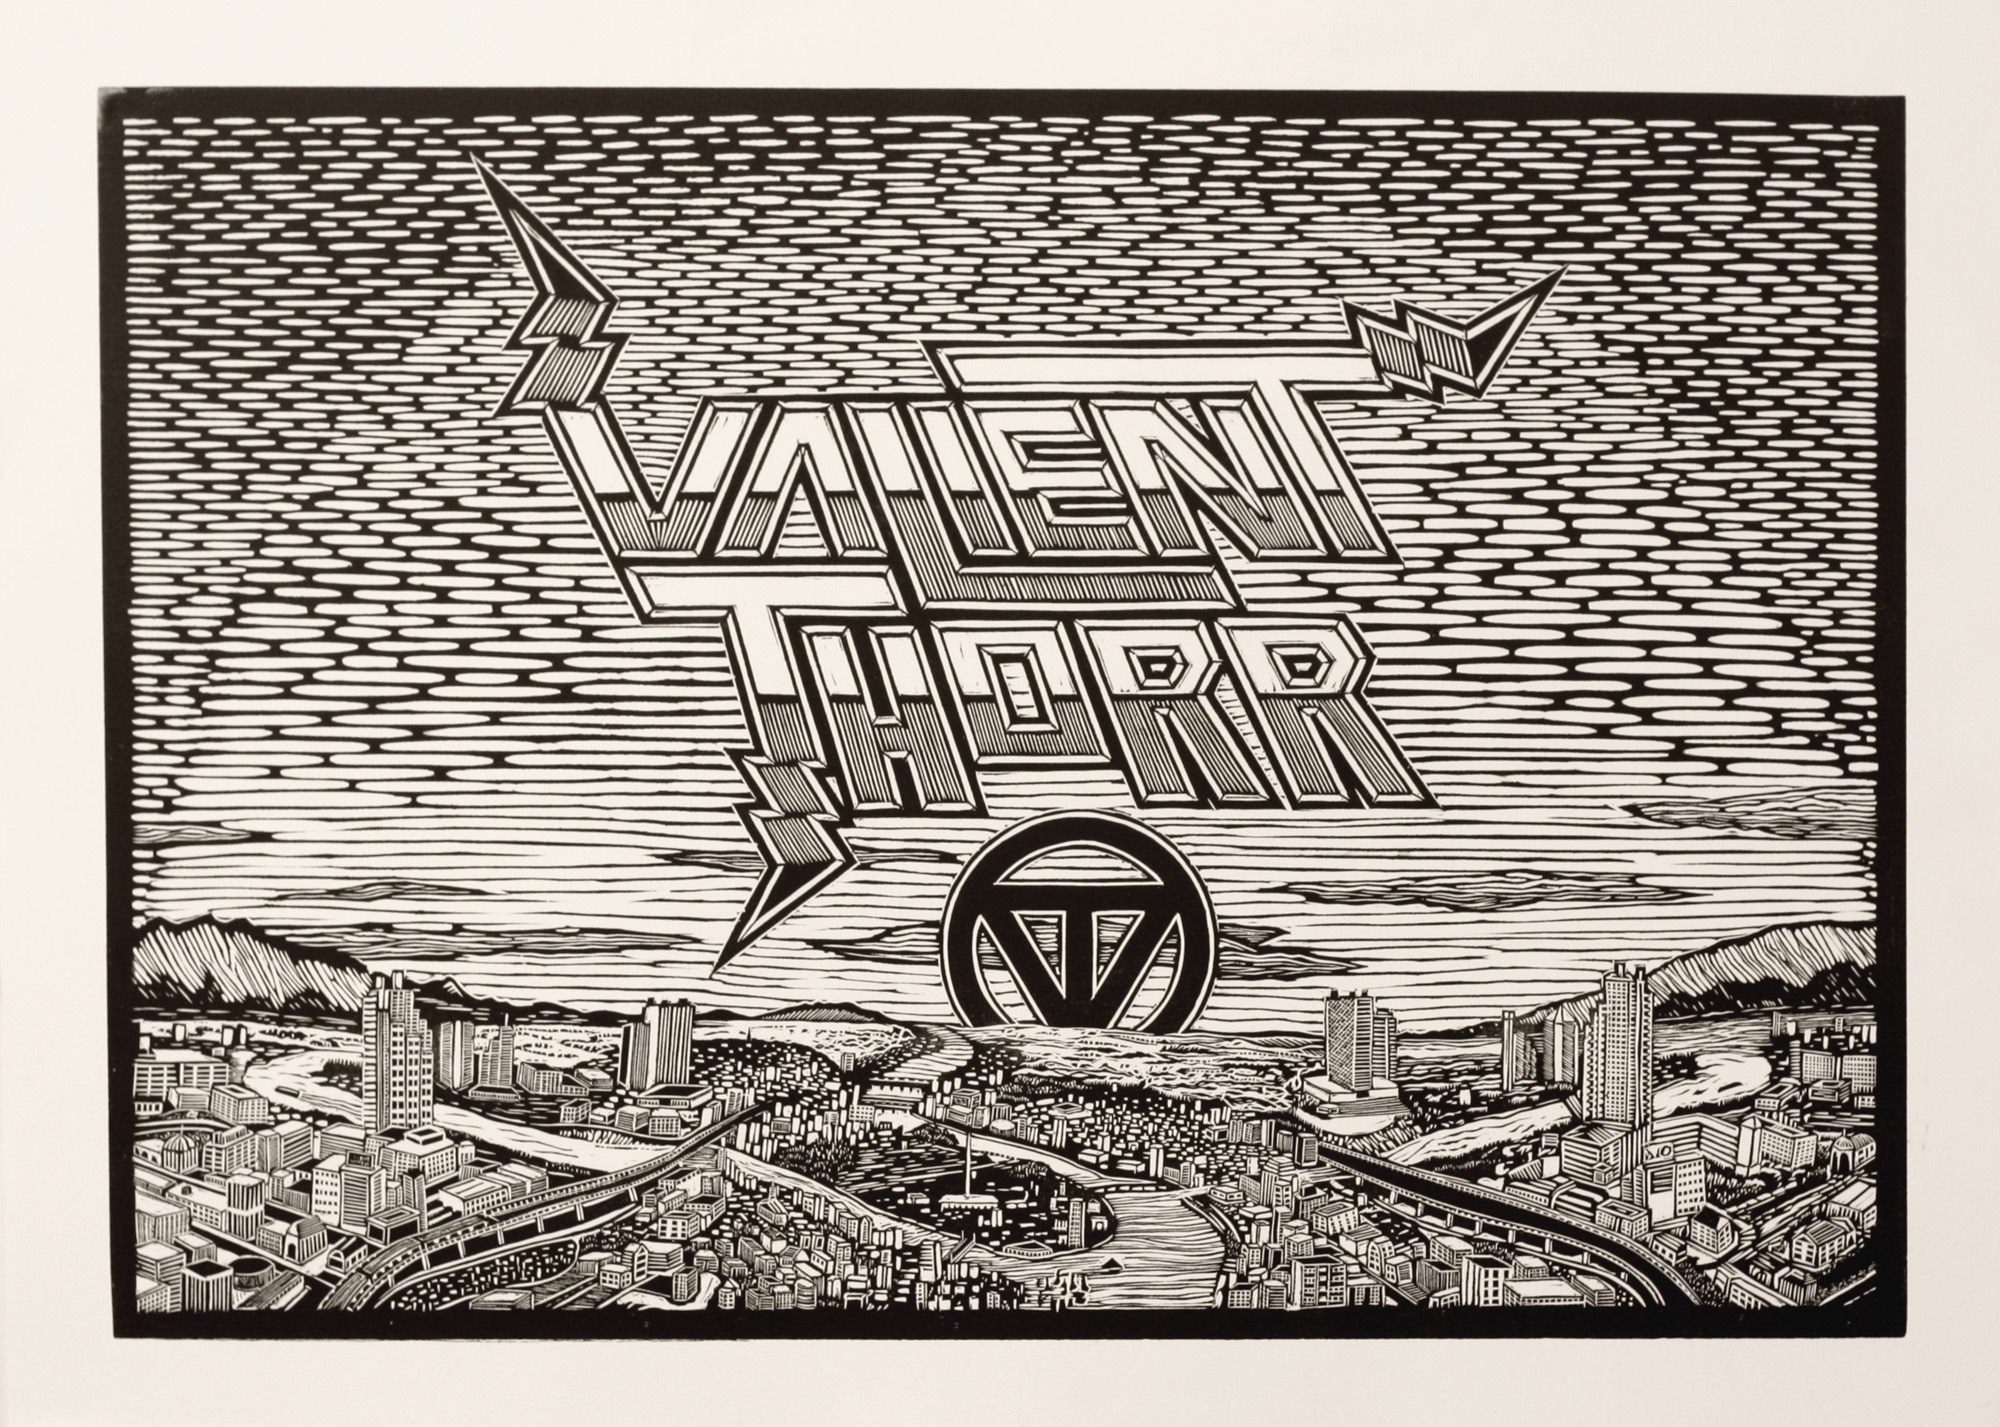 Valient Himself   Valient Thorr   Sintra Relief